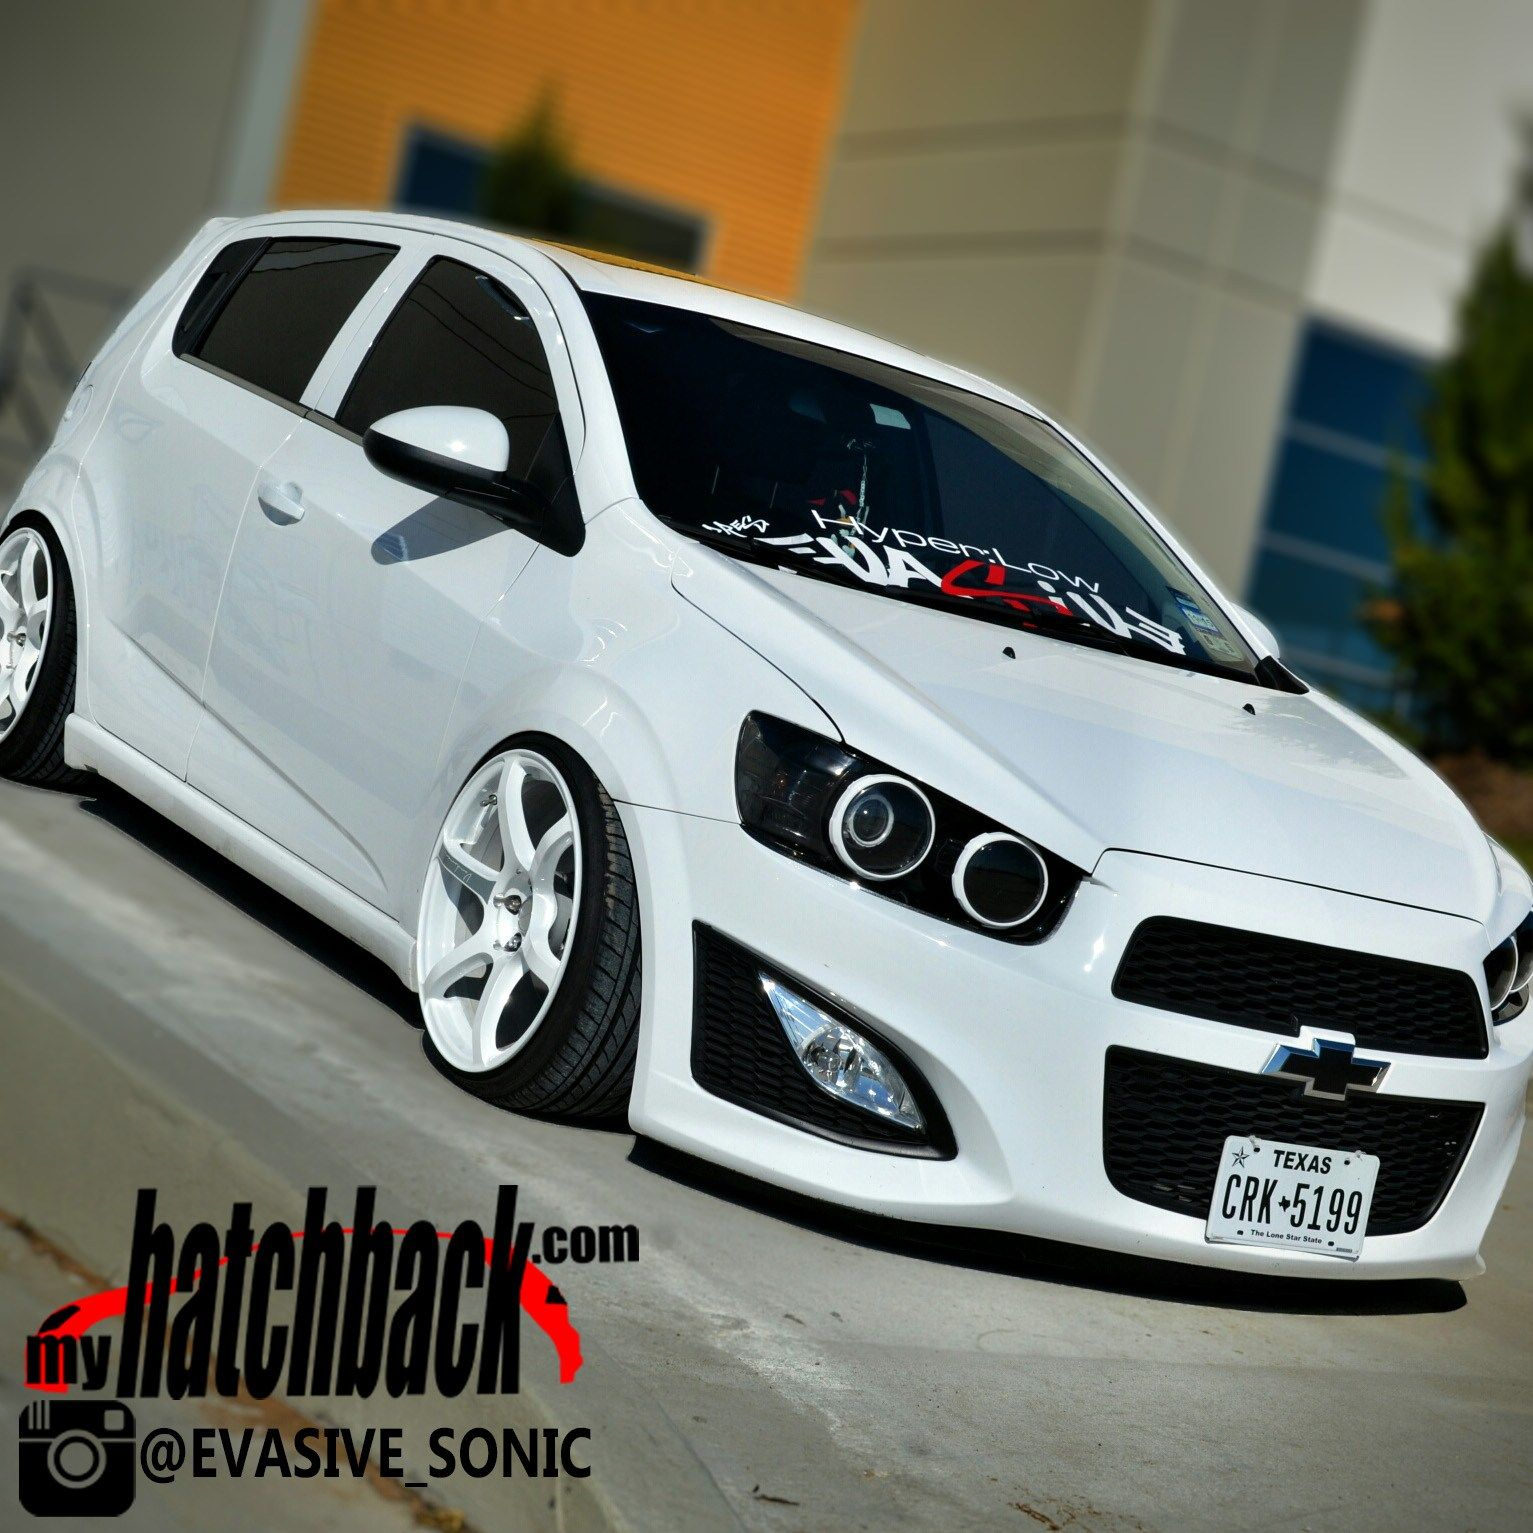 Anthony S 2013 Chevy Sonic Hatchback Aka White Shadow From Team